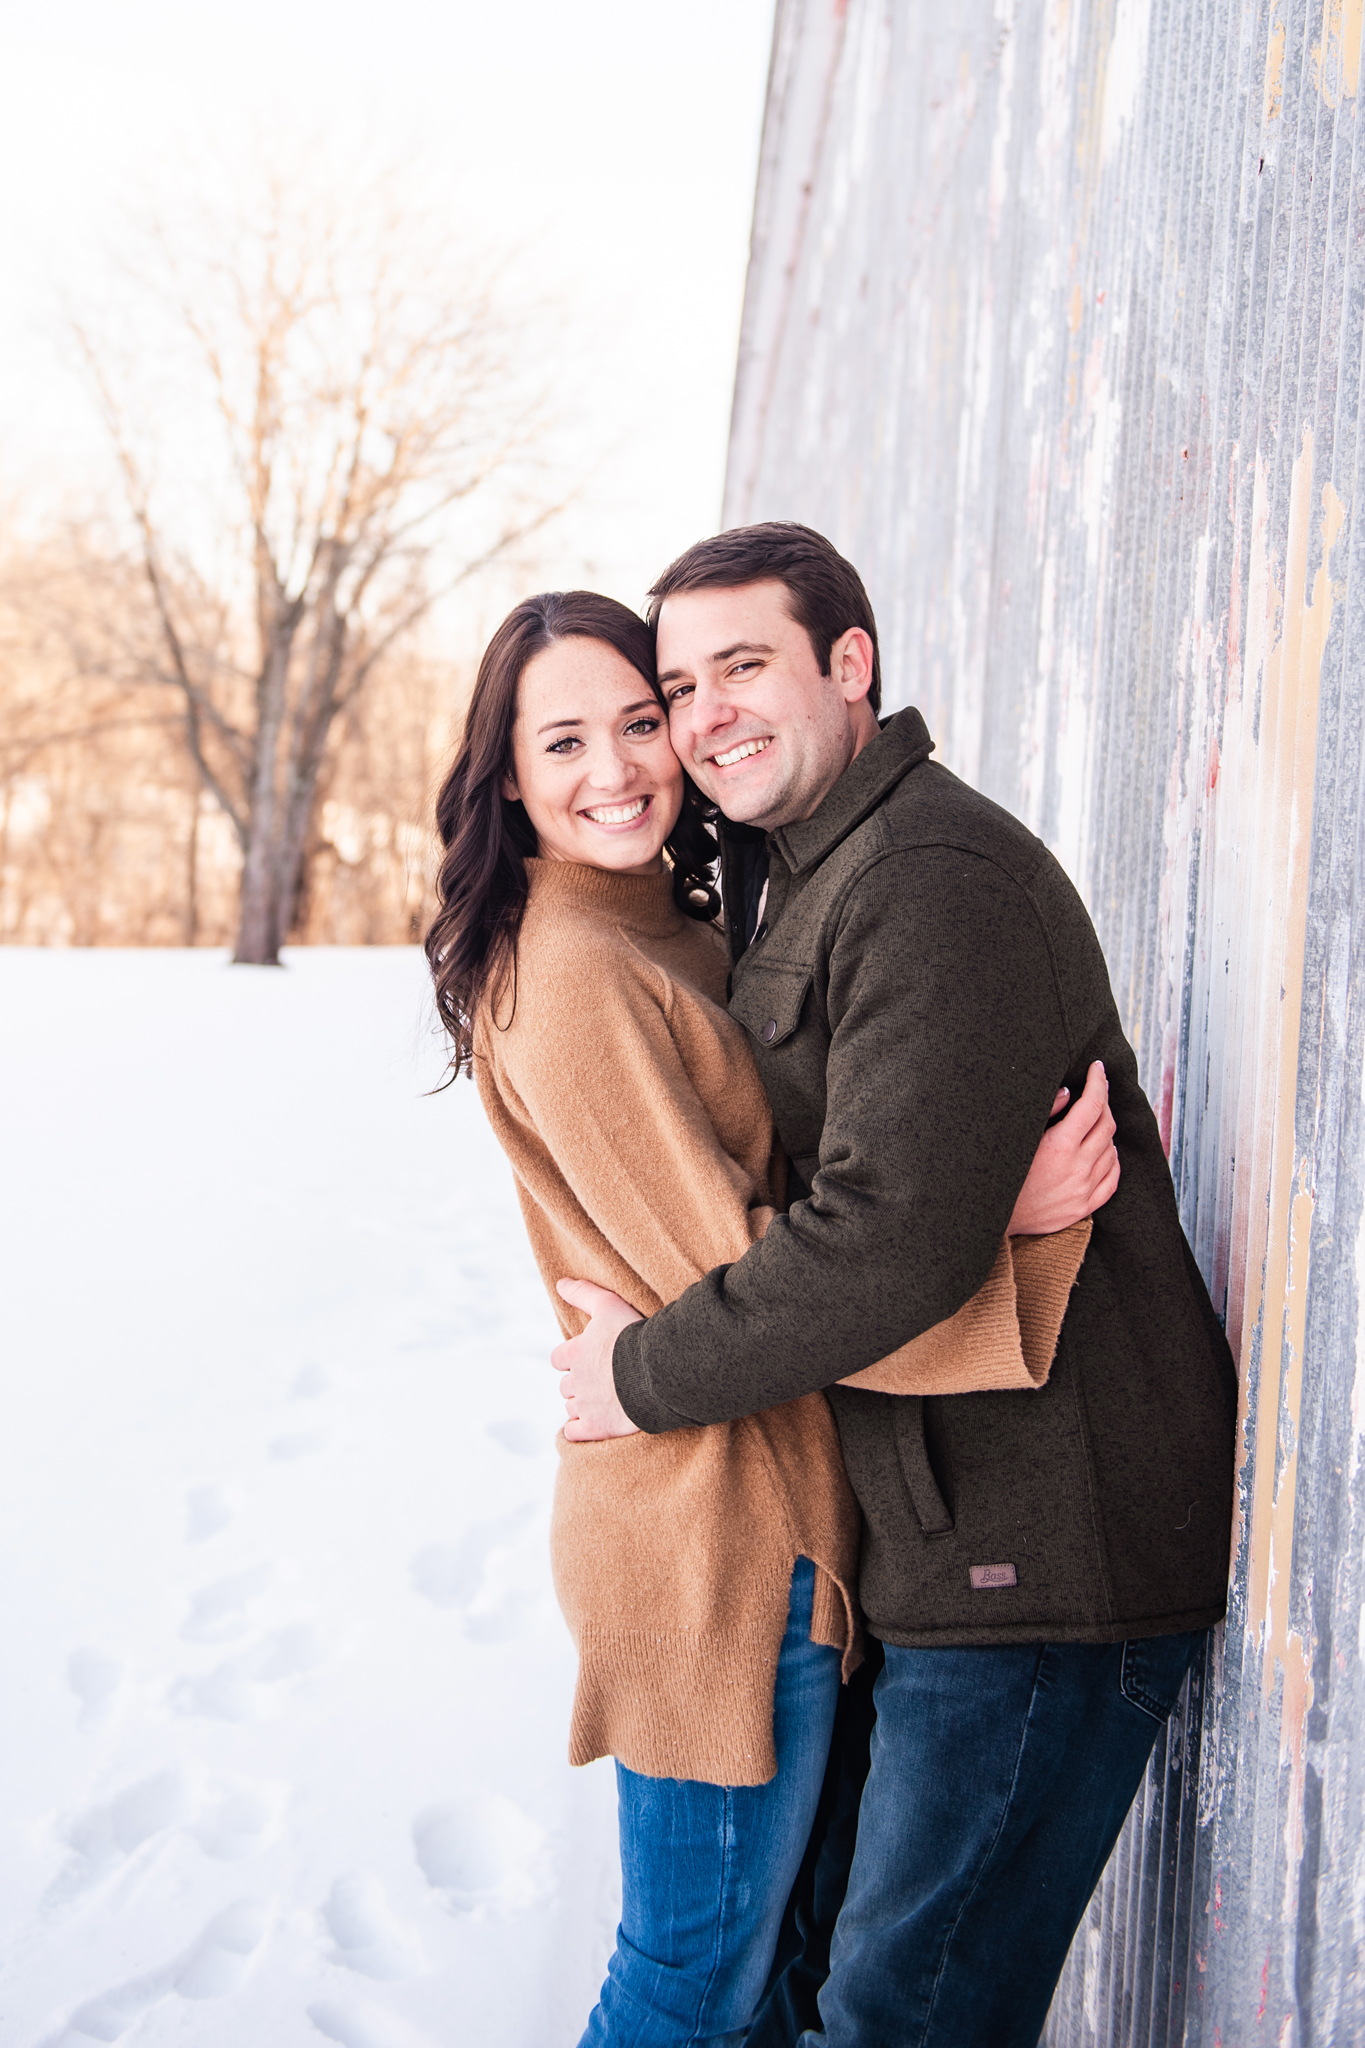 Fallbrook_Central_NY_Engagement_Session_JILL_STUDIO_Rochester_NY_Photographer_DSC_4769.jpg